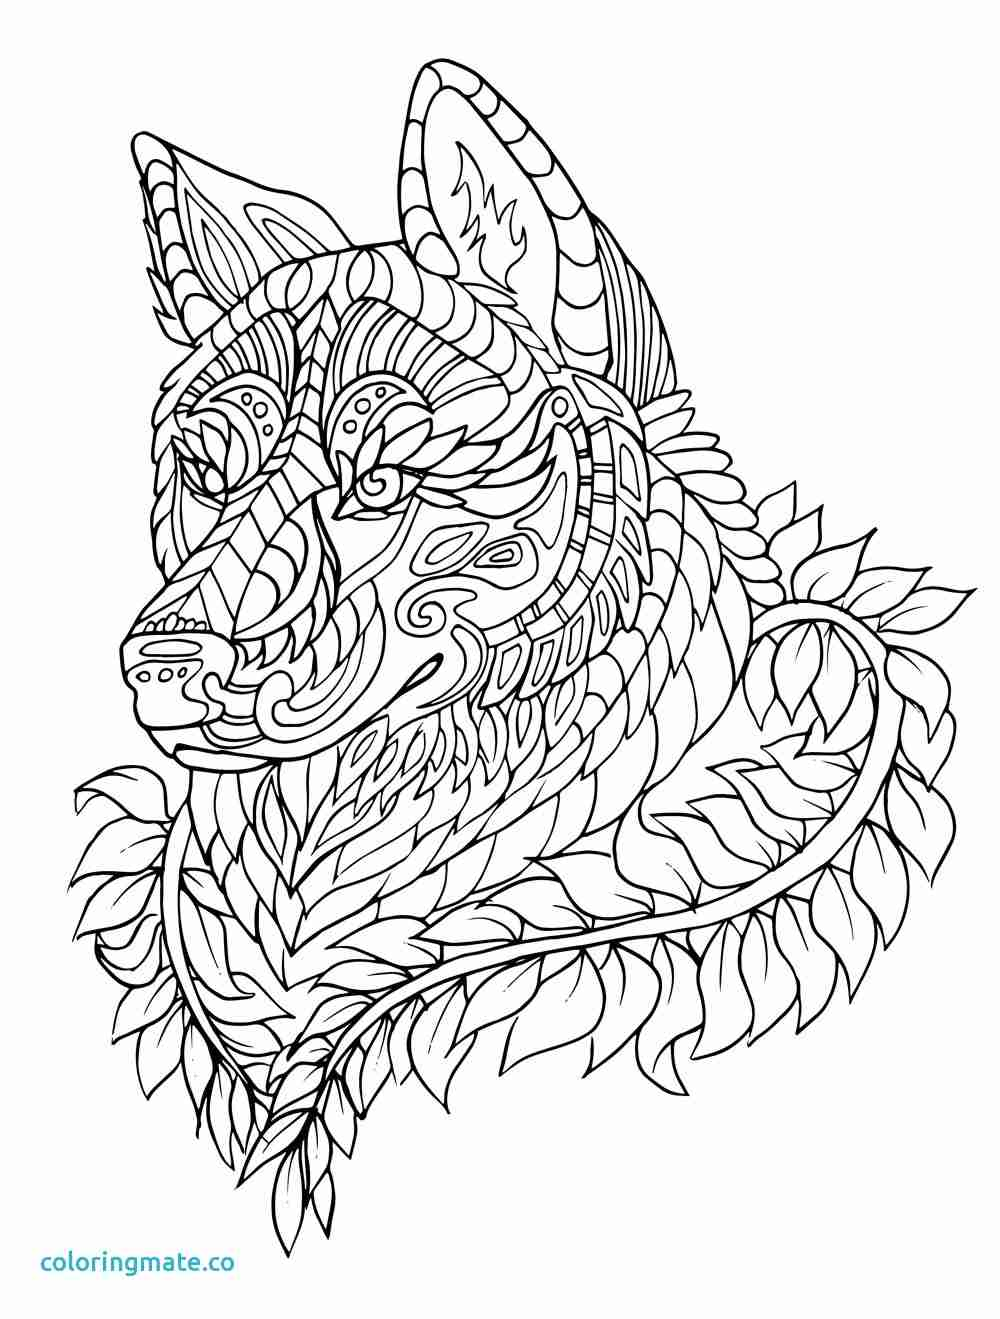 1000x1319 Wolf Coloring Page Unique Free Printable Pages For Showy Adults